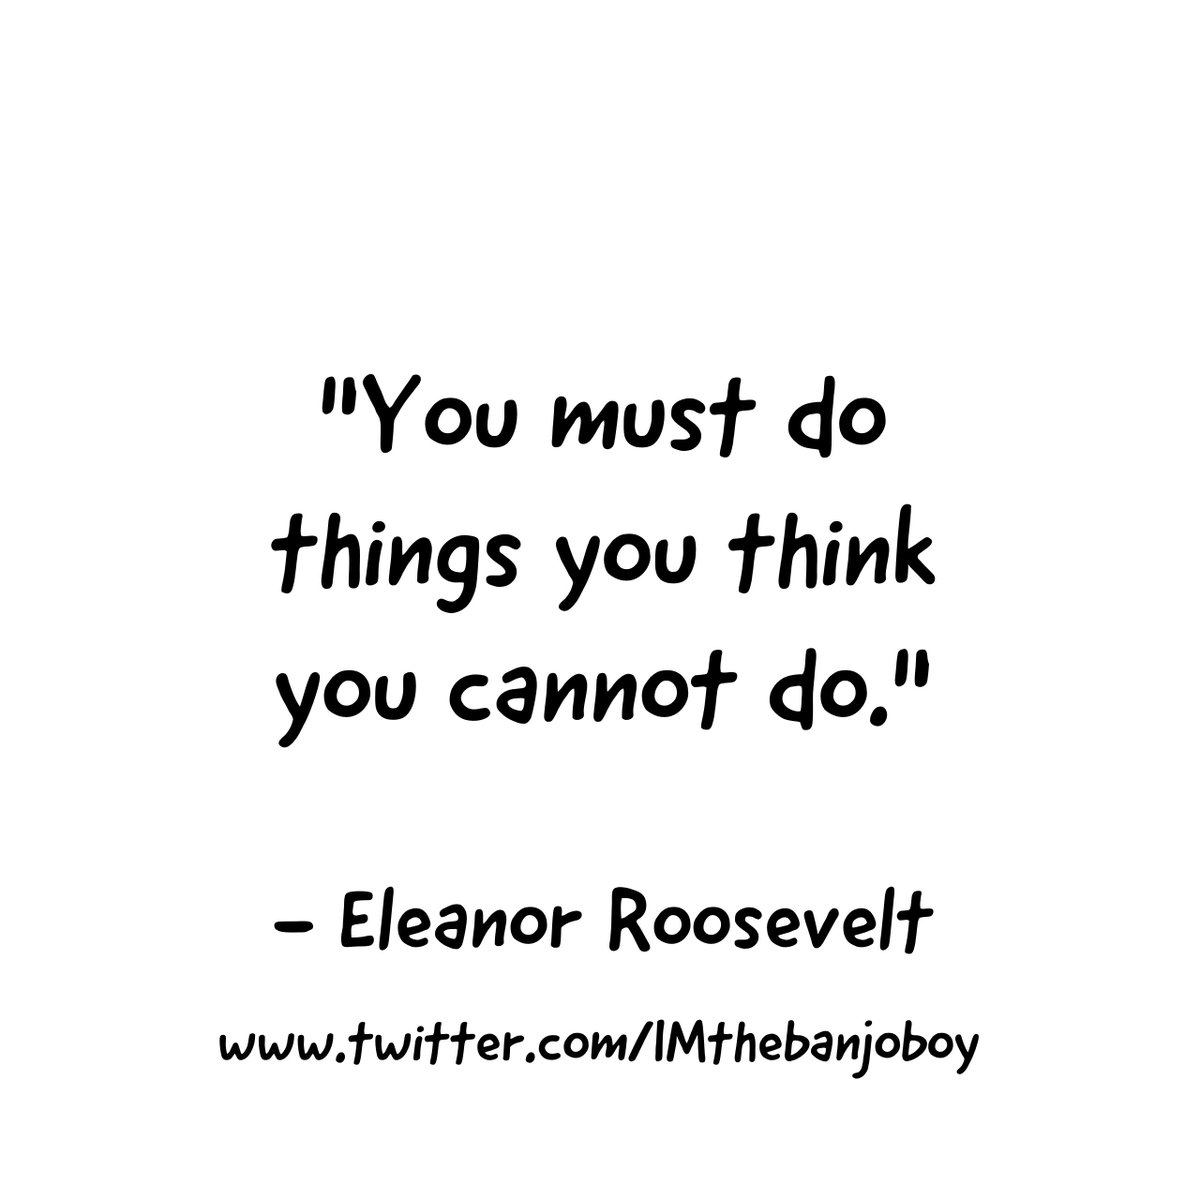 """""""You must do the thing you think you cannot do.""""  #EleanorRoosevelt  https://www.youtube.com/watch?v=iFX-O4wJTuw…  #Learning  #Thoughts #Beliefs  #MoreLearning  #Action  #Actions  #Activity #Courage   #JustDoIt  #DoItAnyway  #Progress  #Success #us  #Quotes  #MoreQuotes"""